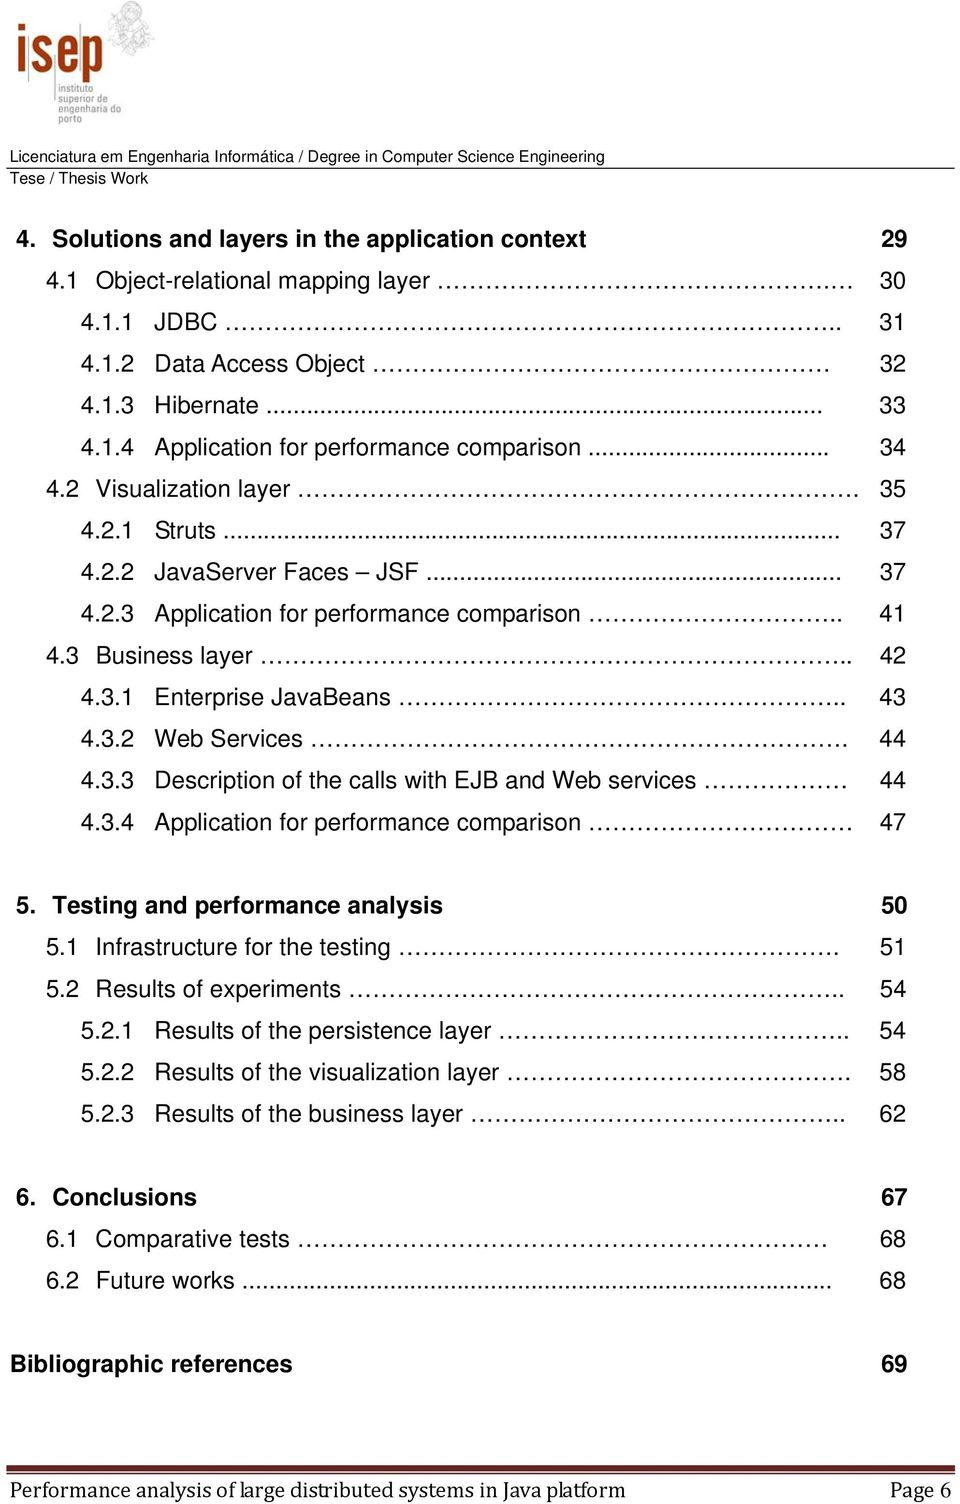 44 4.3.3 Description of the calls with EJB and Web services 44 4.3.4 Application for performance comparison 47 5. Testing and performance analysis 50 5.1 Infrastructure for the testing. 51 5.